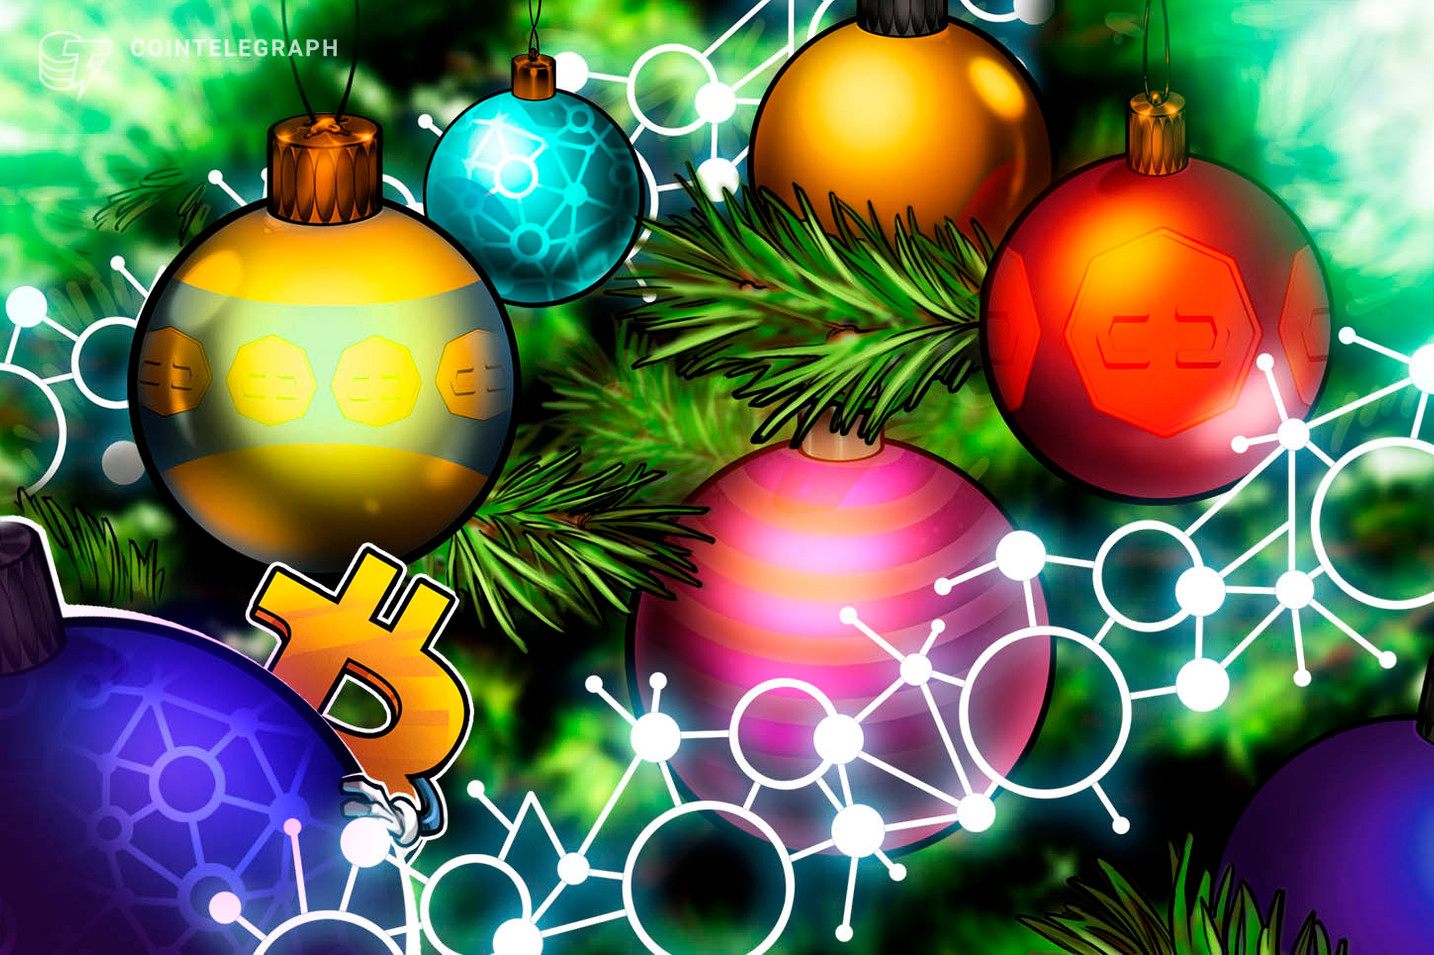 Forget the milk and cookies, Santa is accepting Bitcoin this holiday season